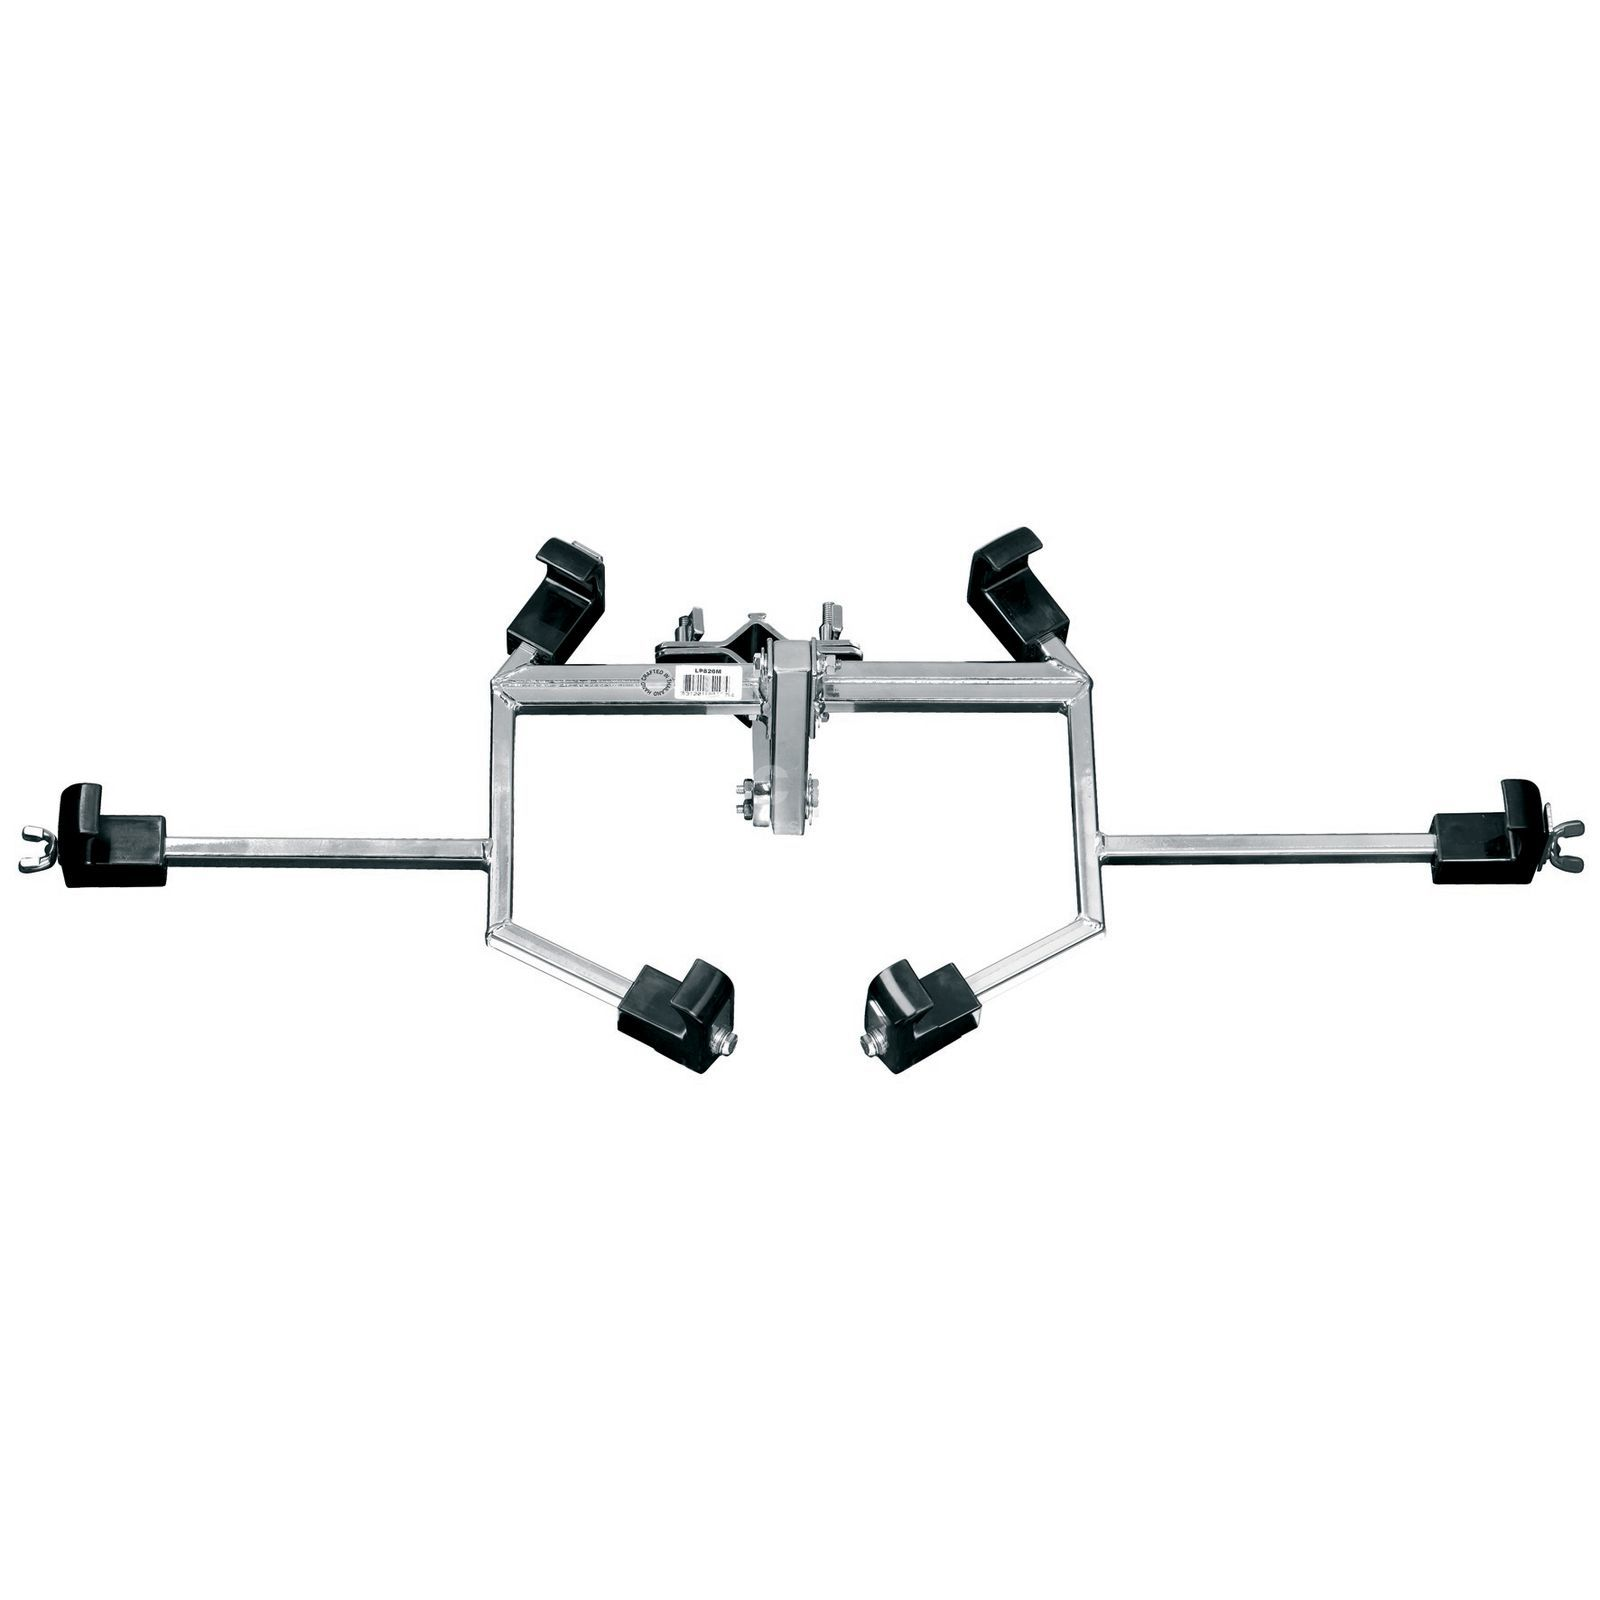 Latin Percussion Compact Conga Mounting System LP826M for Giovanni Series Изображение товара